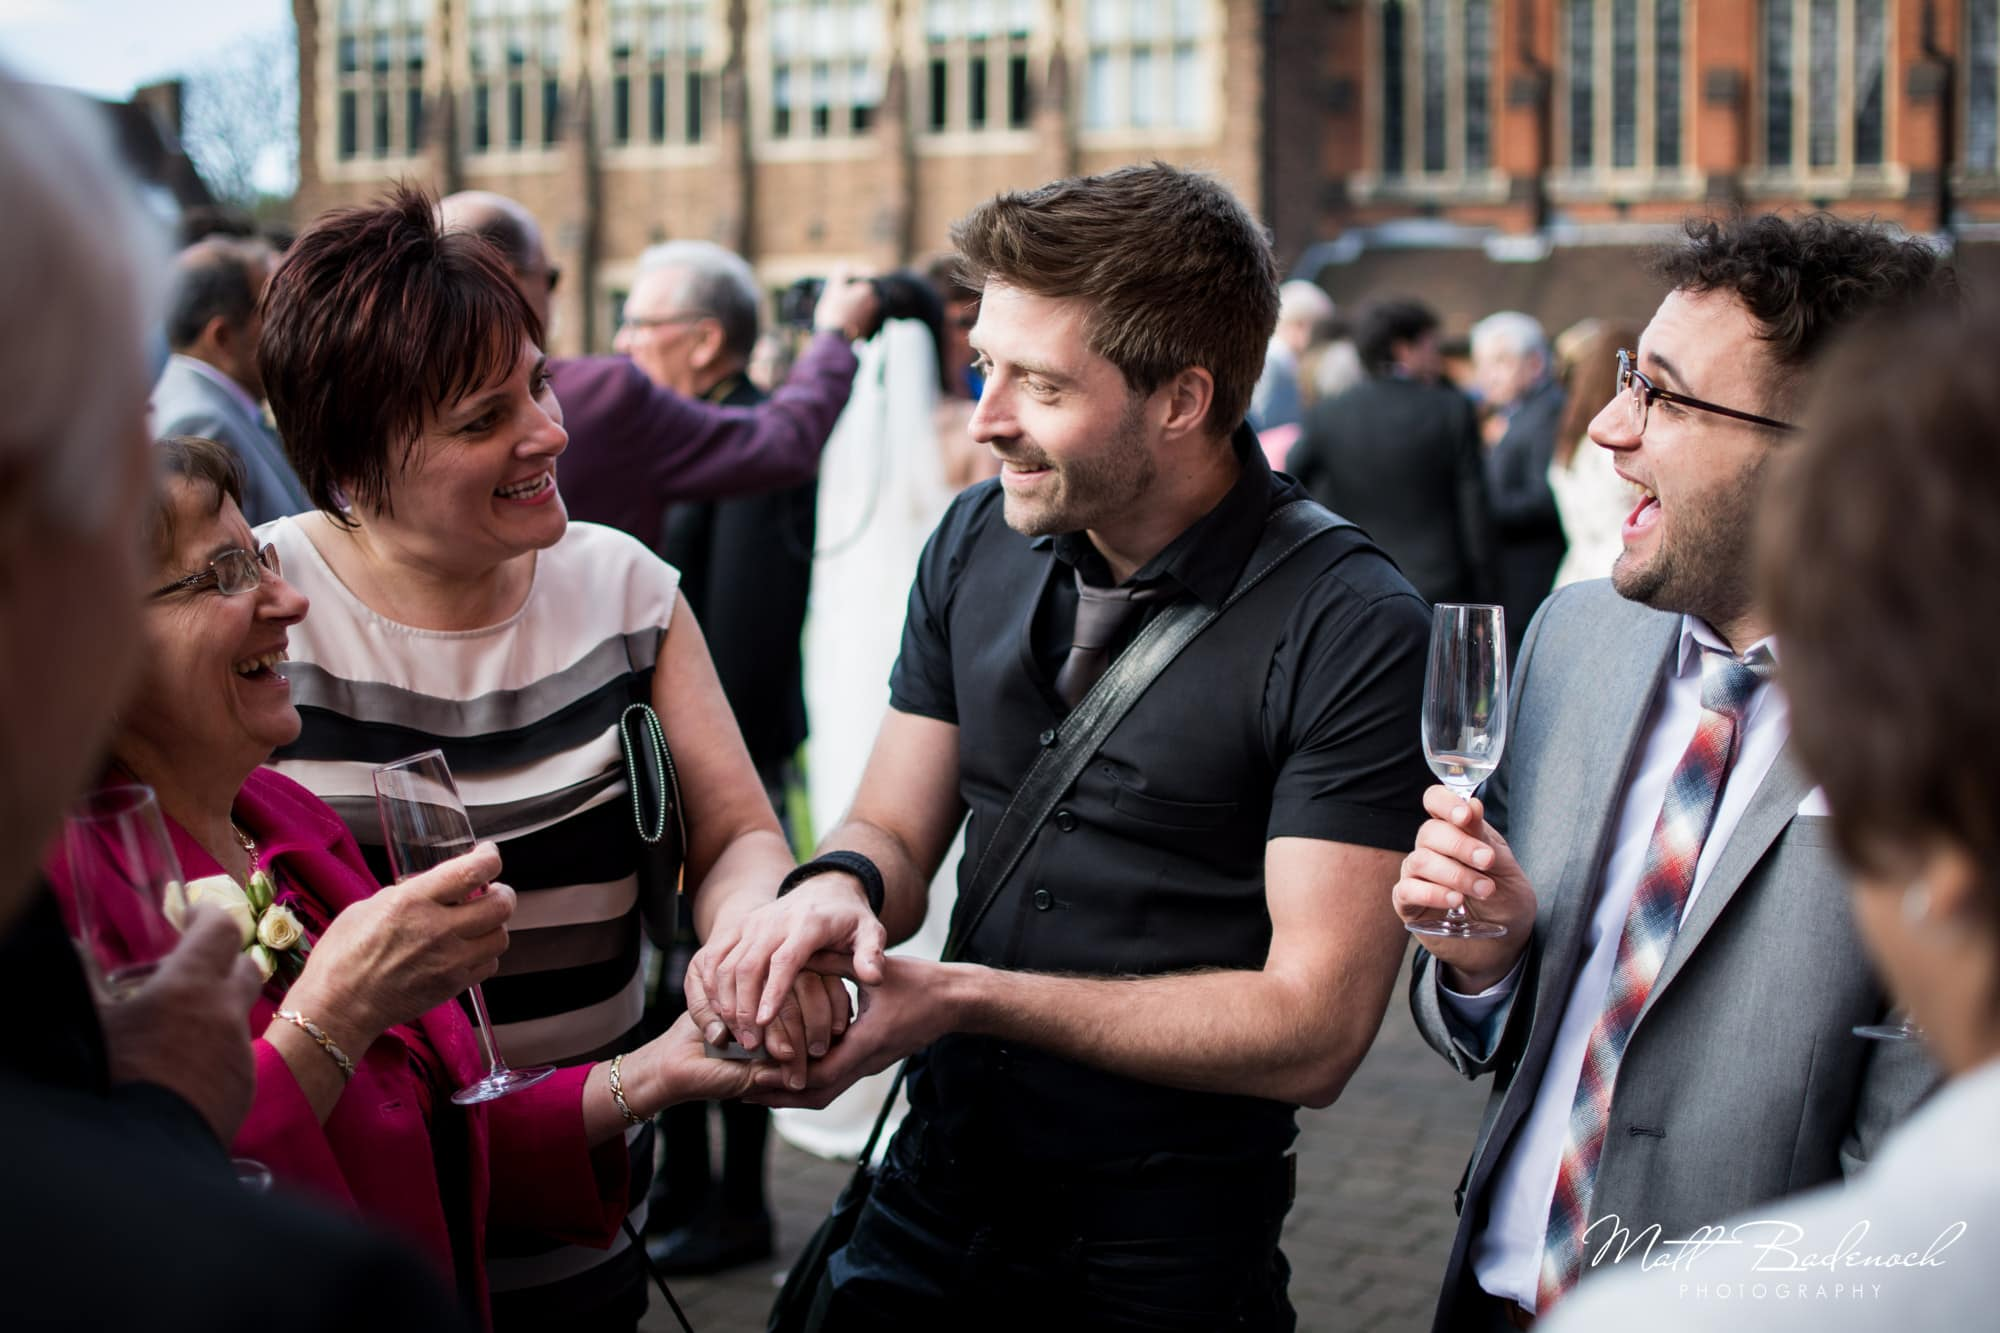 Neb and guests at a wedding, Neb Magic wedding magician London | Matt Badenoch Photography